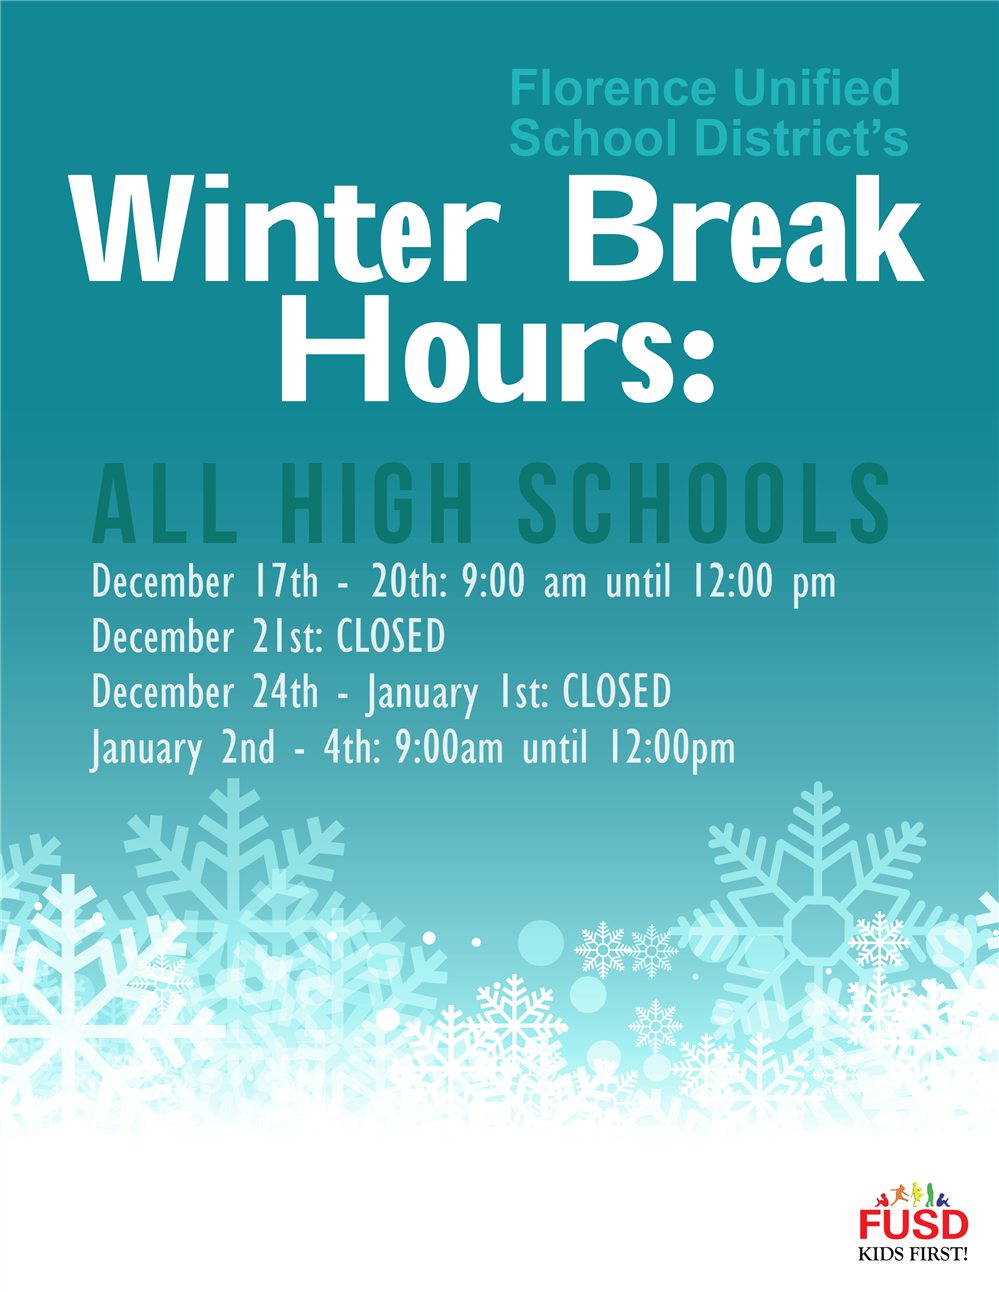 High School Winter Break Hours - December 17th -20th 9am til noon and January 2nd - 4th 9am til noo